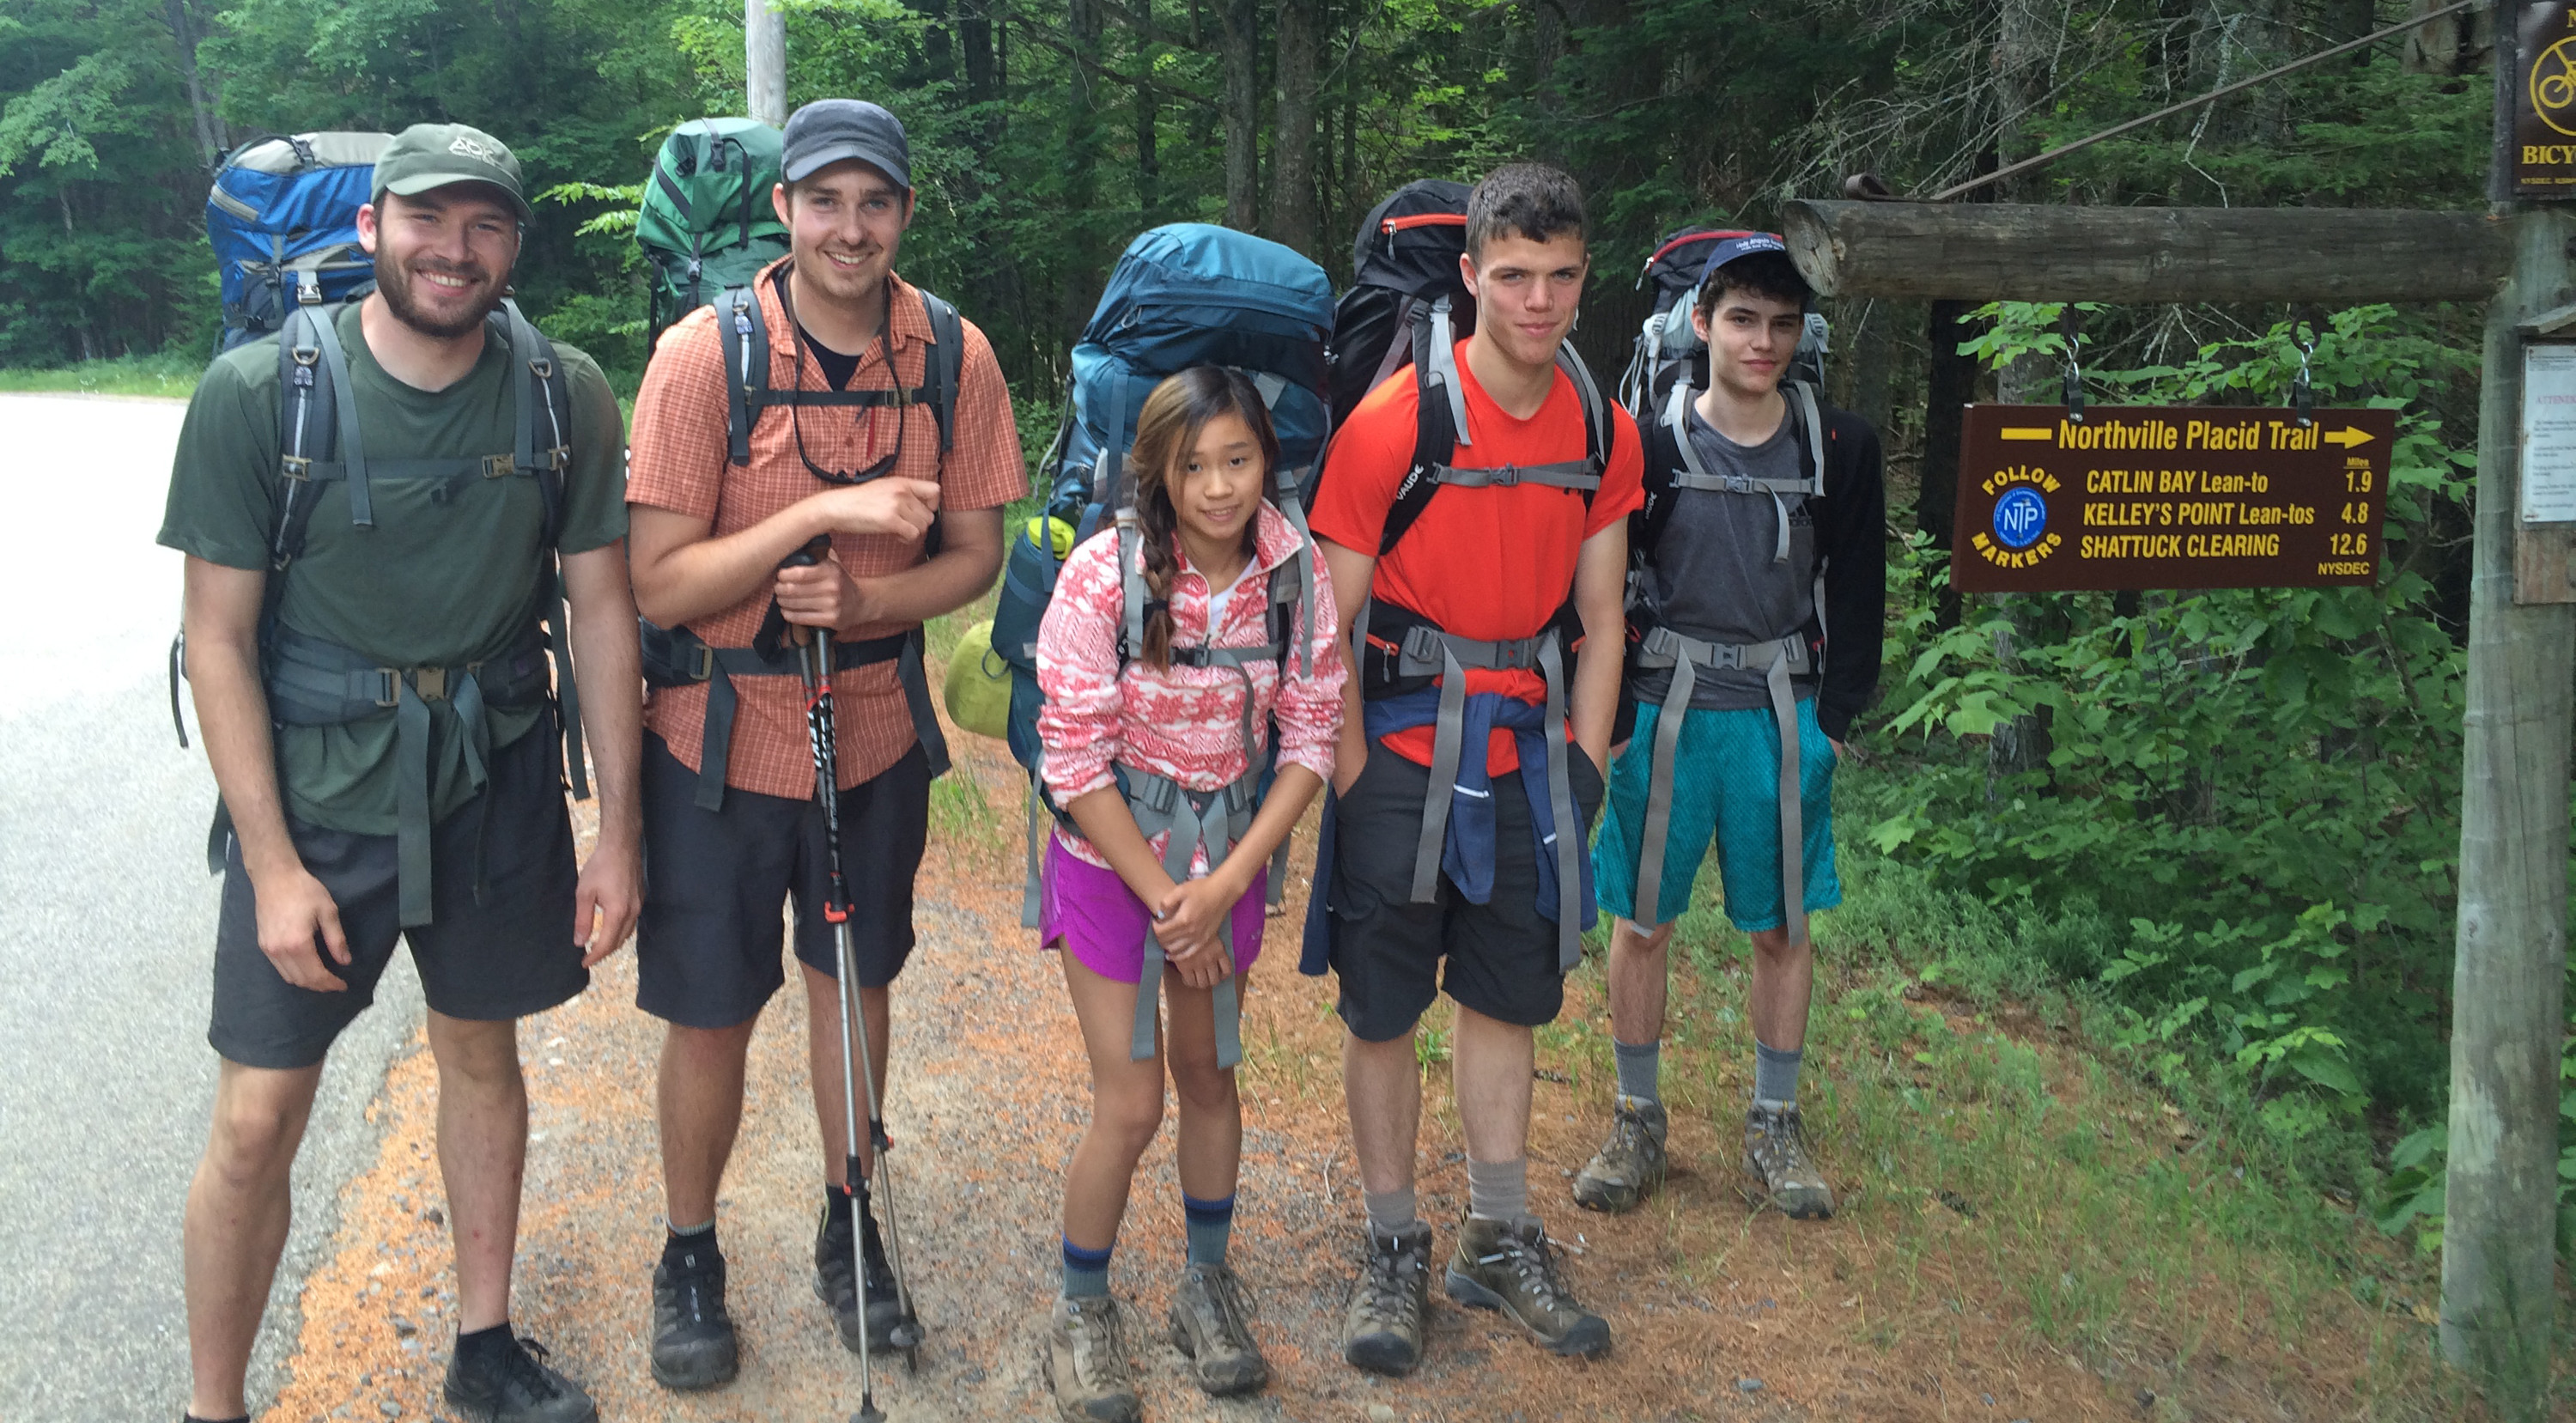 A teen backpacking course before heading out on the trail